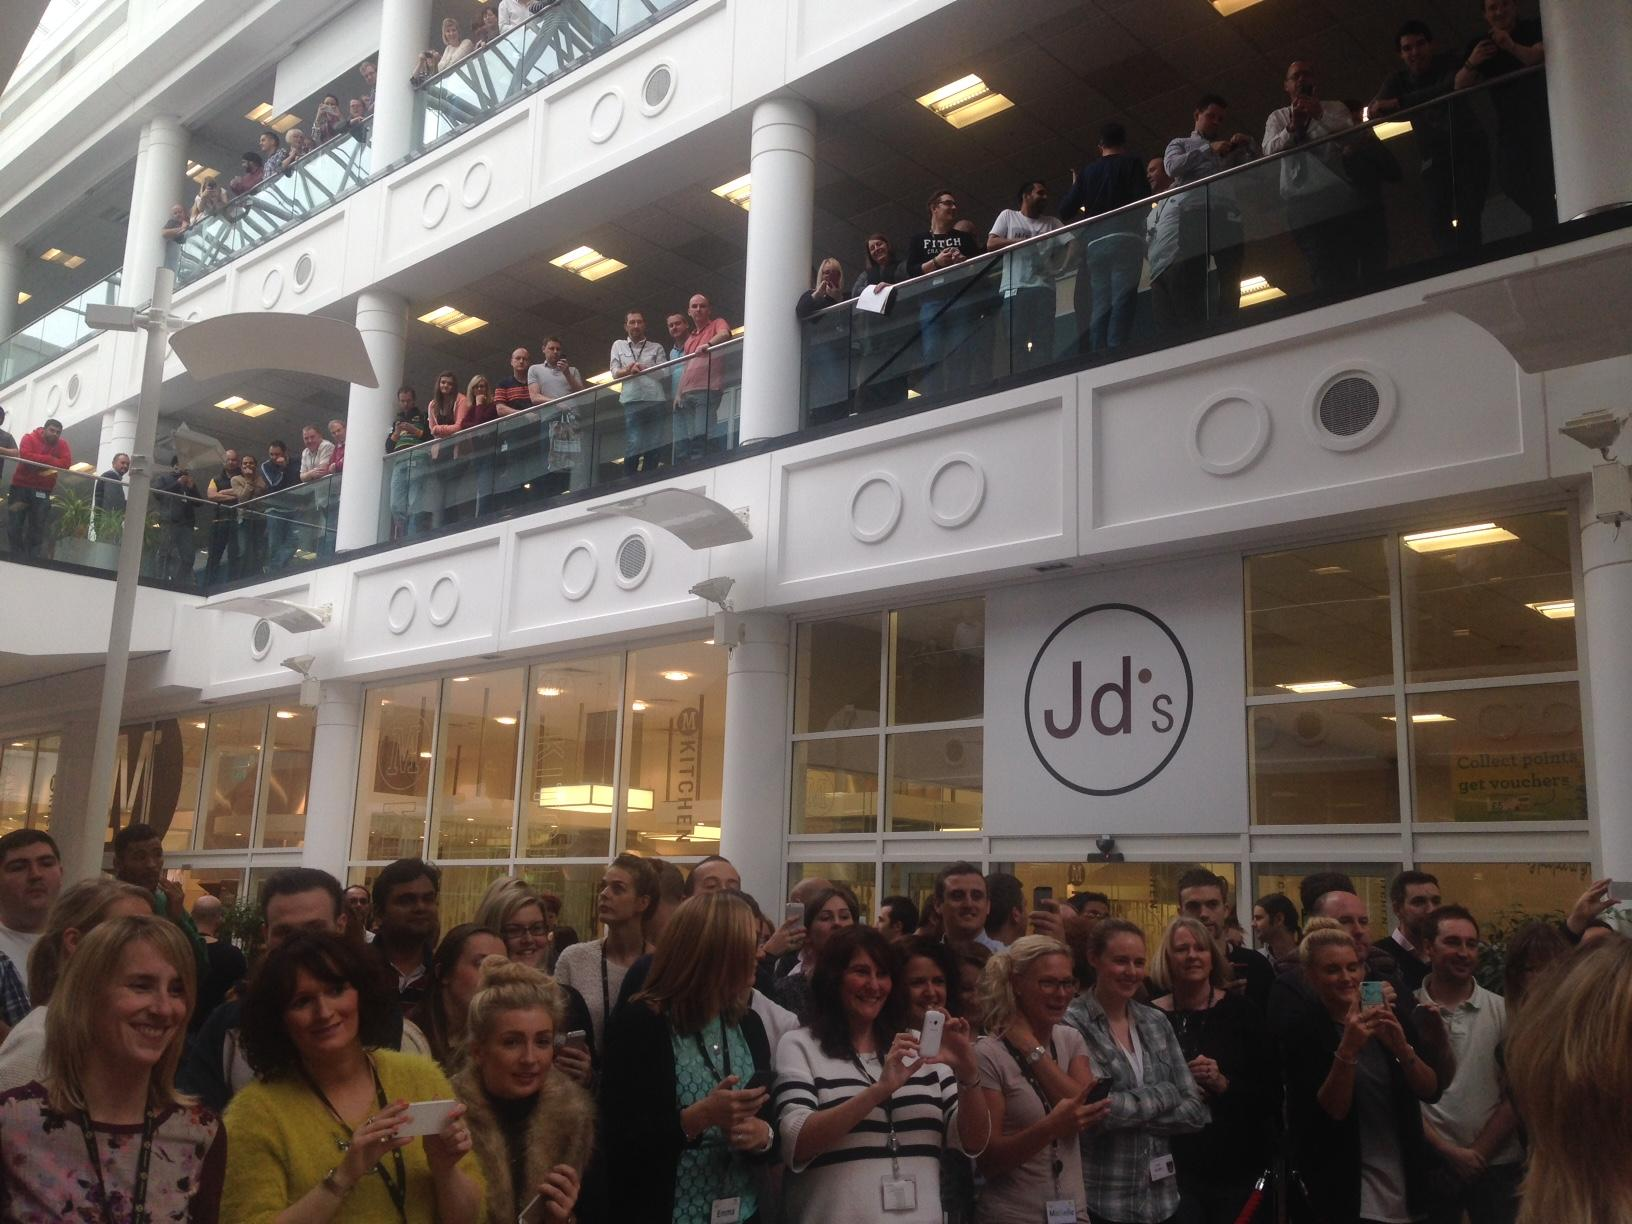 RT @orionbooks: Check out the crowd @lemontwittor gathered at @Morrisons HQ this afternoon! #LittleKeith http://t.co/AellvQLdc5